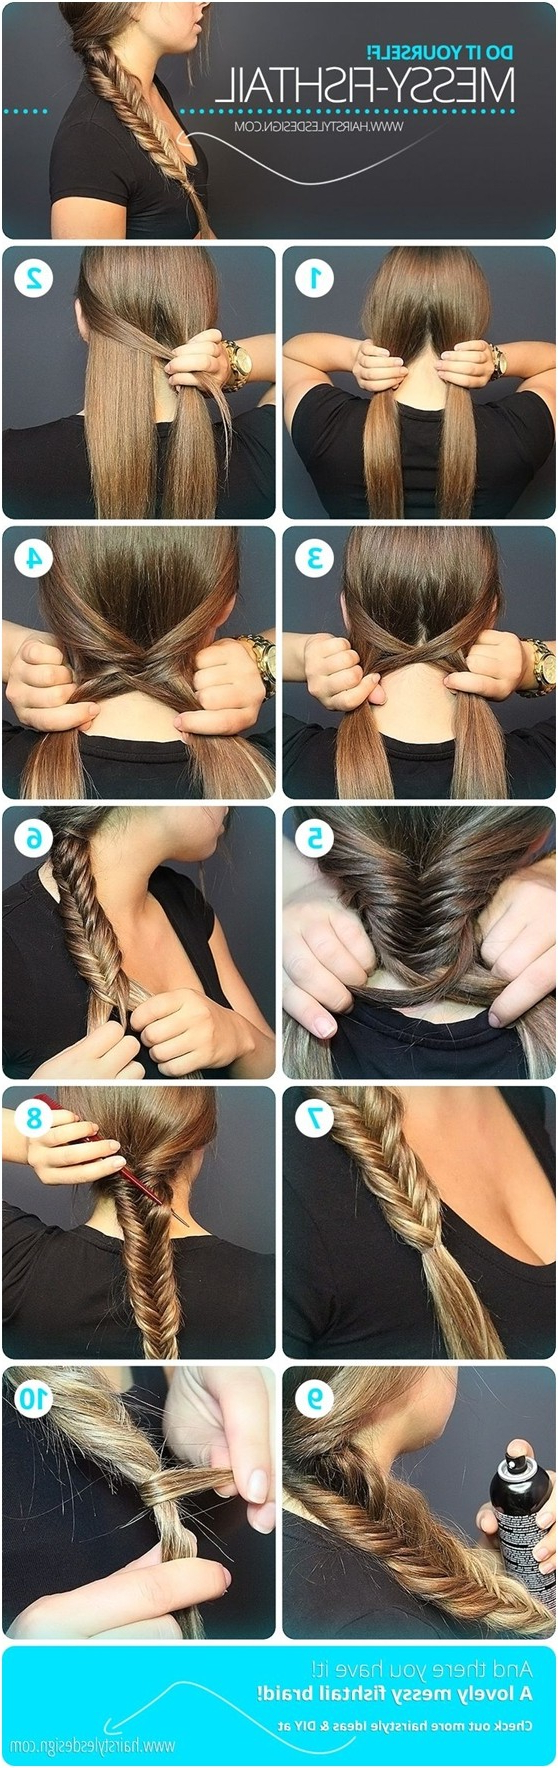 12 Simple Fishtail Braid Hairstyles – Pretty Designs With Regard To Popular Messy Fishtail Hairstyles For Oblong Faces (View 2 of 20)